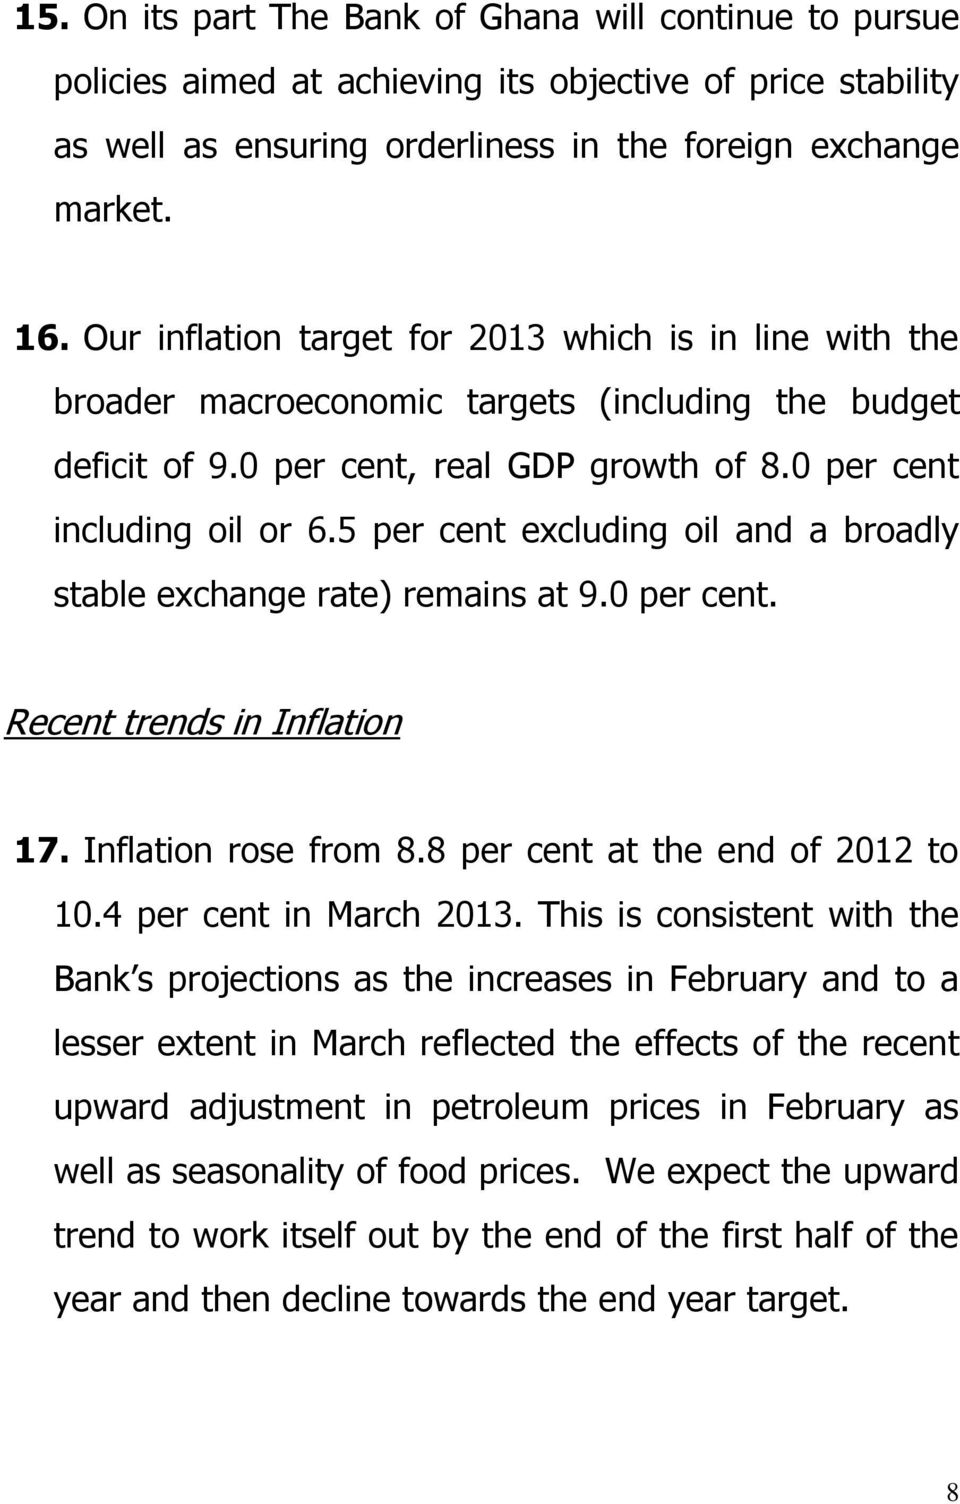 5 per cent excluding oil and a broadly stable exchange rate) remains at 9.0 per cent. Recent trends in Inflation 17. Inflation rose from 8.8 per cent at the end of 2012 to 10.4 per cent in March 2013.